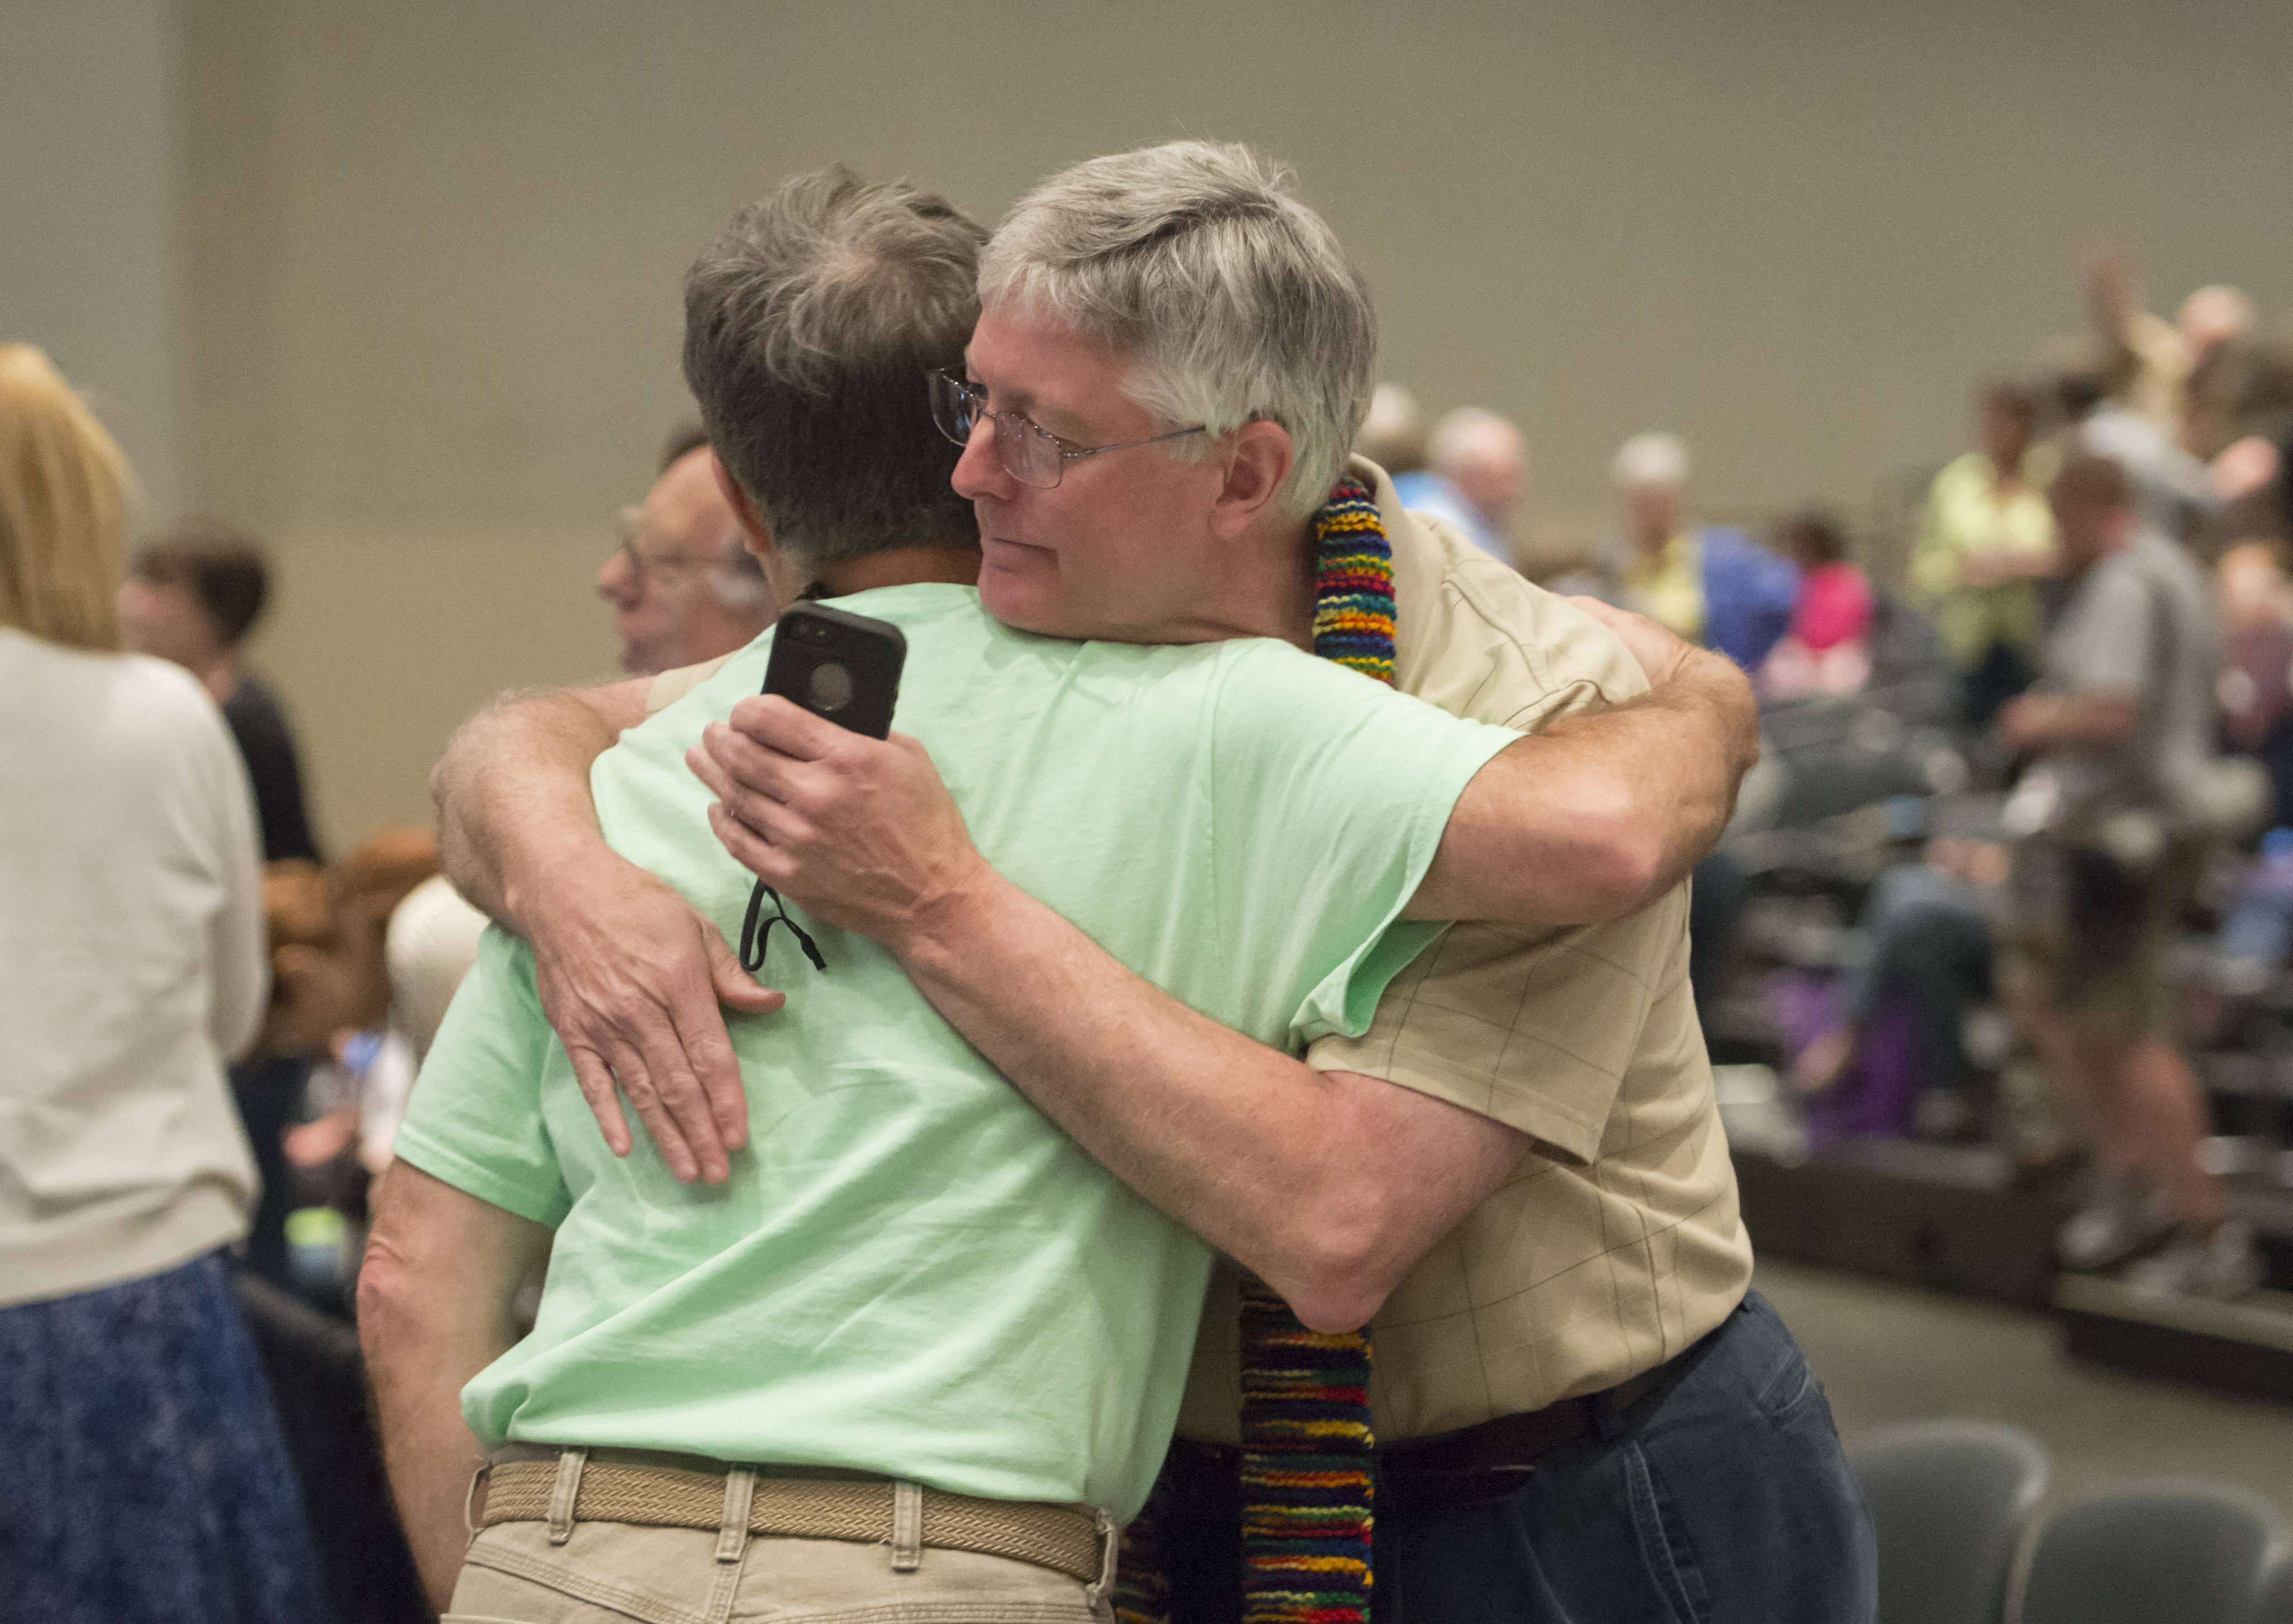 "Gary Lyon, of Leechburg, PA, left, and Bill Samford, of Hawley, PA., celebrate after a vote allowing Presbyterian pastors discretion in marrying same-sex couples at the 221st General Assembly of the Presbyterian Church at Cobo Hall, in Detroit, Thursday, June 19, 2014. The top legislative body of the Presbyterian Church (U.S.A.) voted by large margins to recognize same-sex marriage as Christian in the church constitution, adding language that marriage can be the union of ""two people,"" not just ""a man and a woman."""